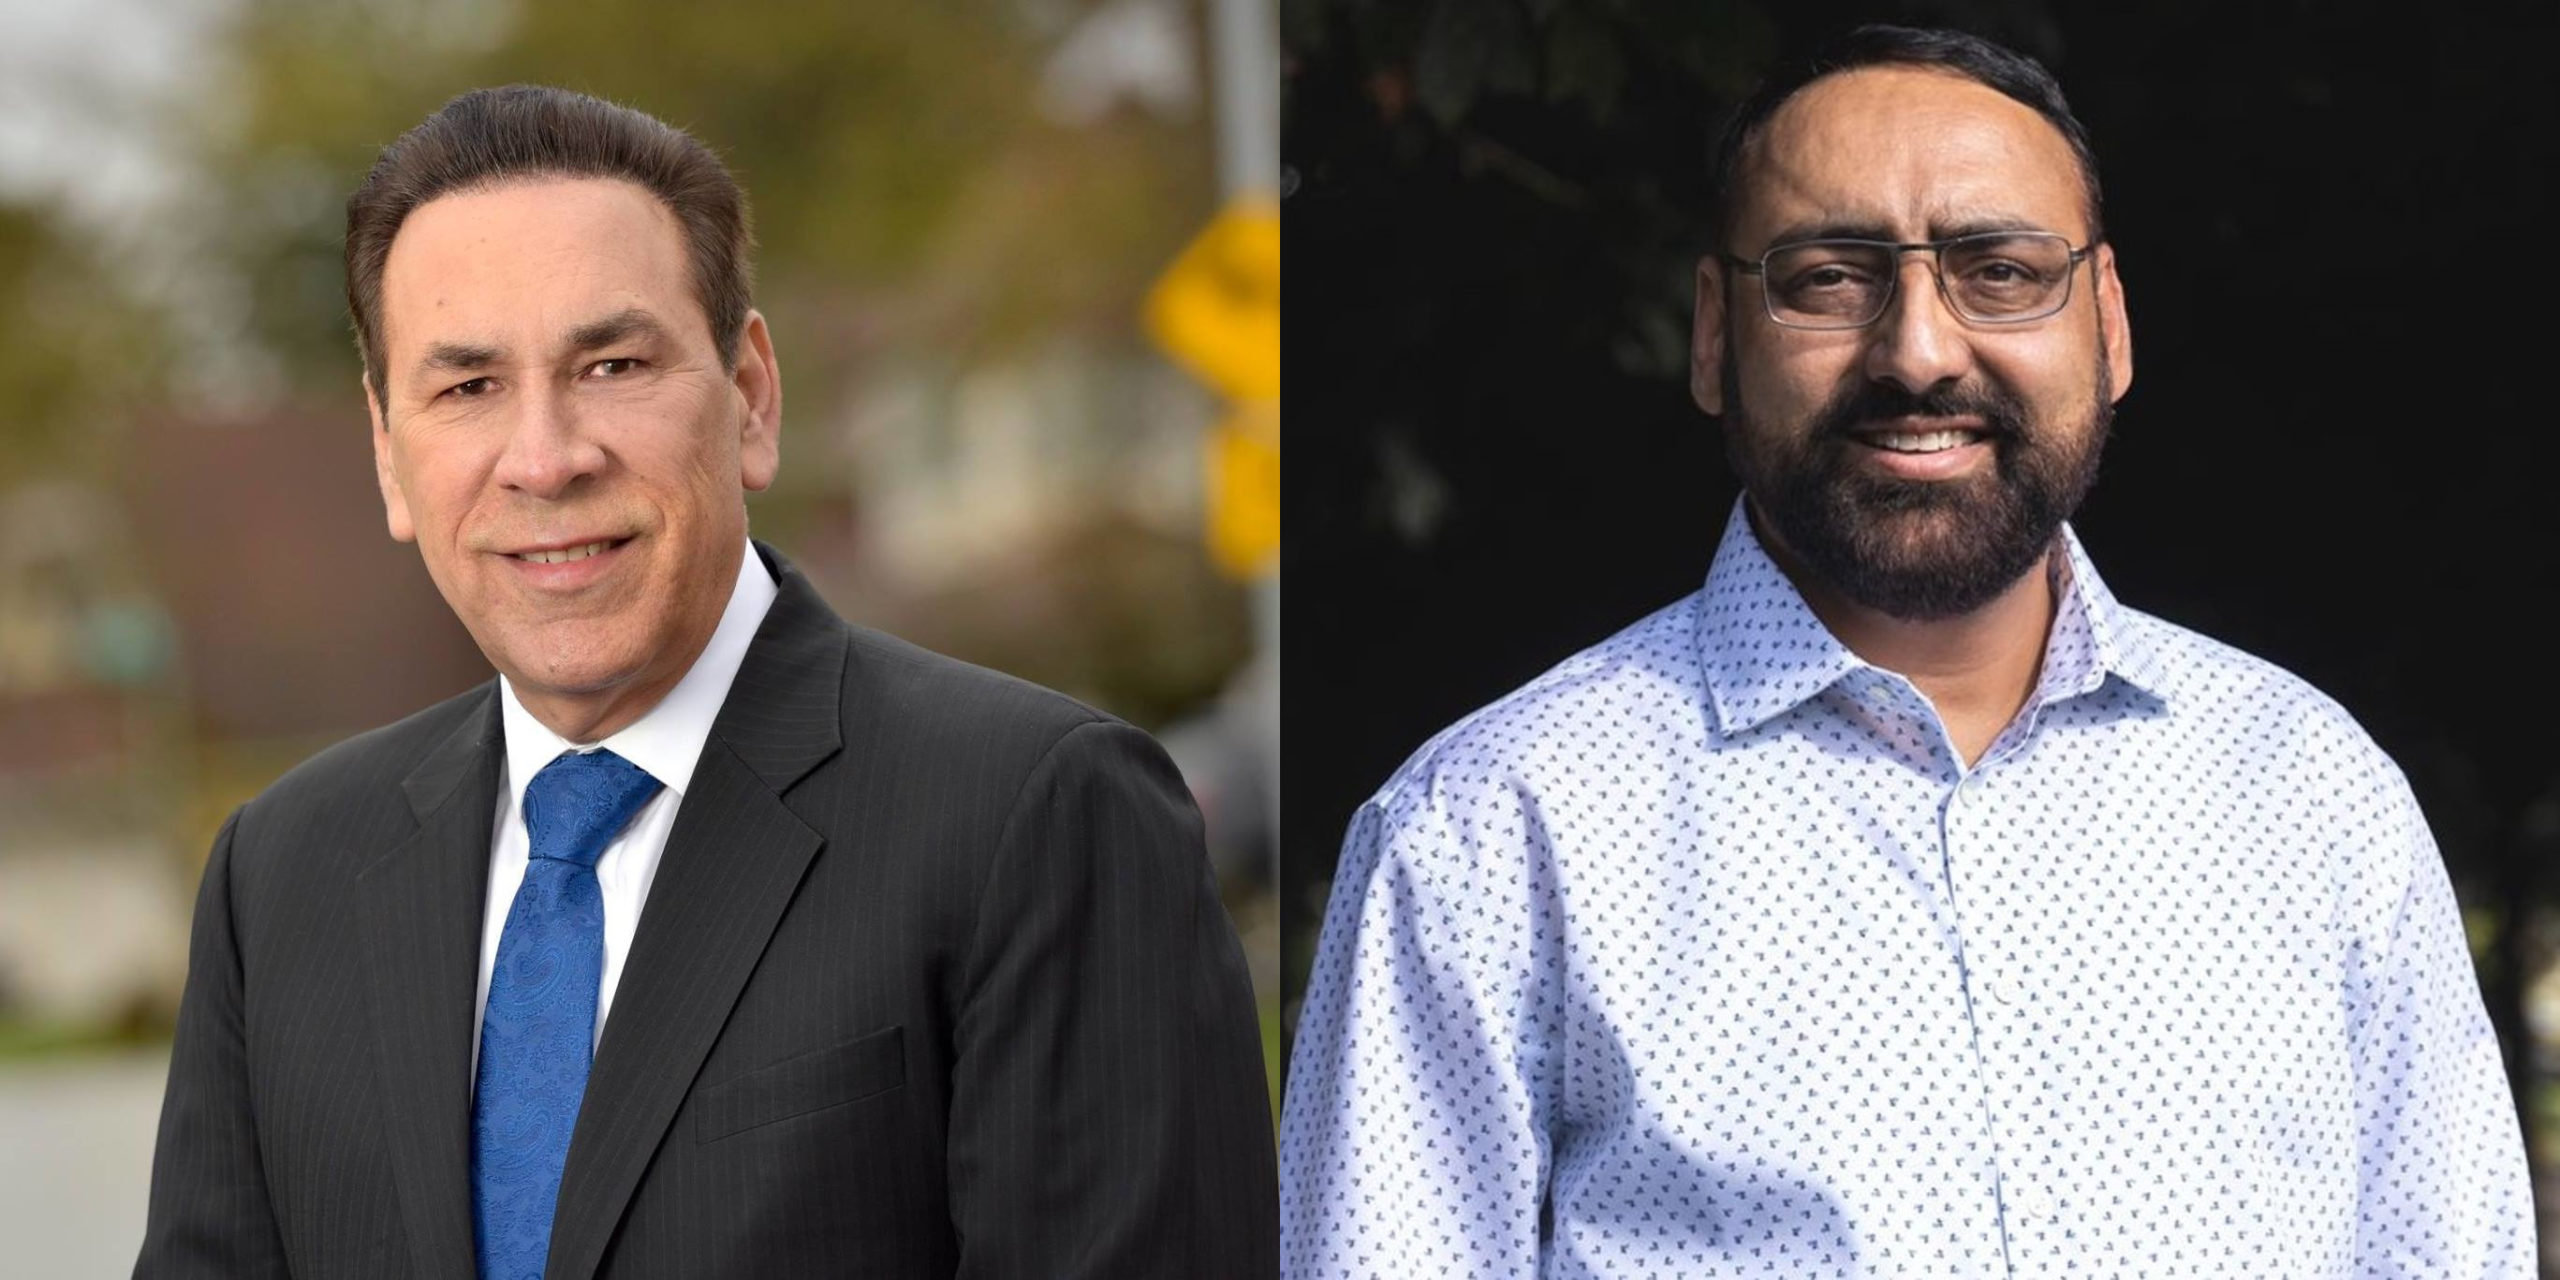 Jagrup Brar & Garry Thind discuss their riding & issues with Dr Shinder Purewal